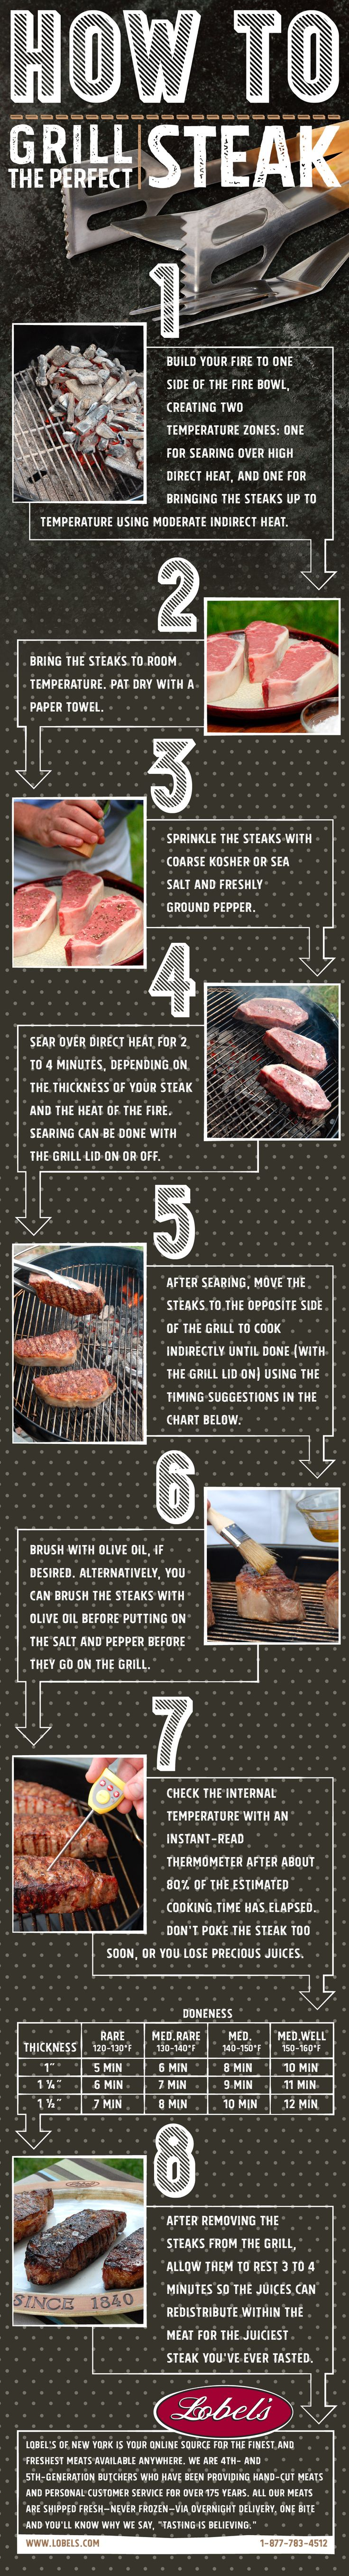 Do you know how to grill the perfect steak? Let America's #1 family of butchers show you how using the indirect-heat method. (Charcoal Bbq Recipes)